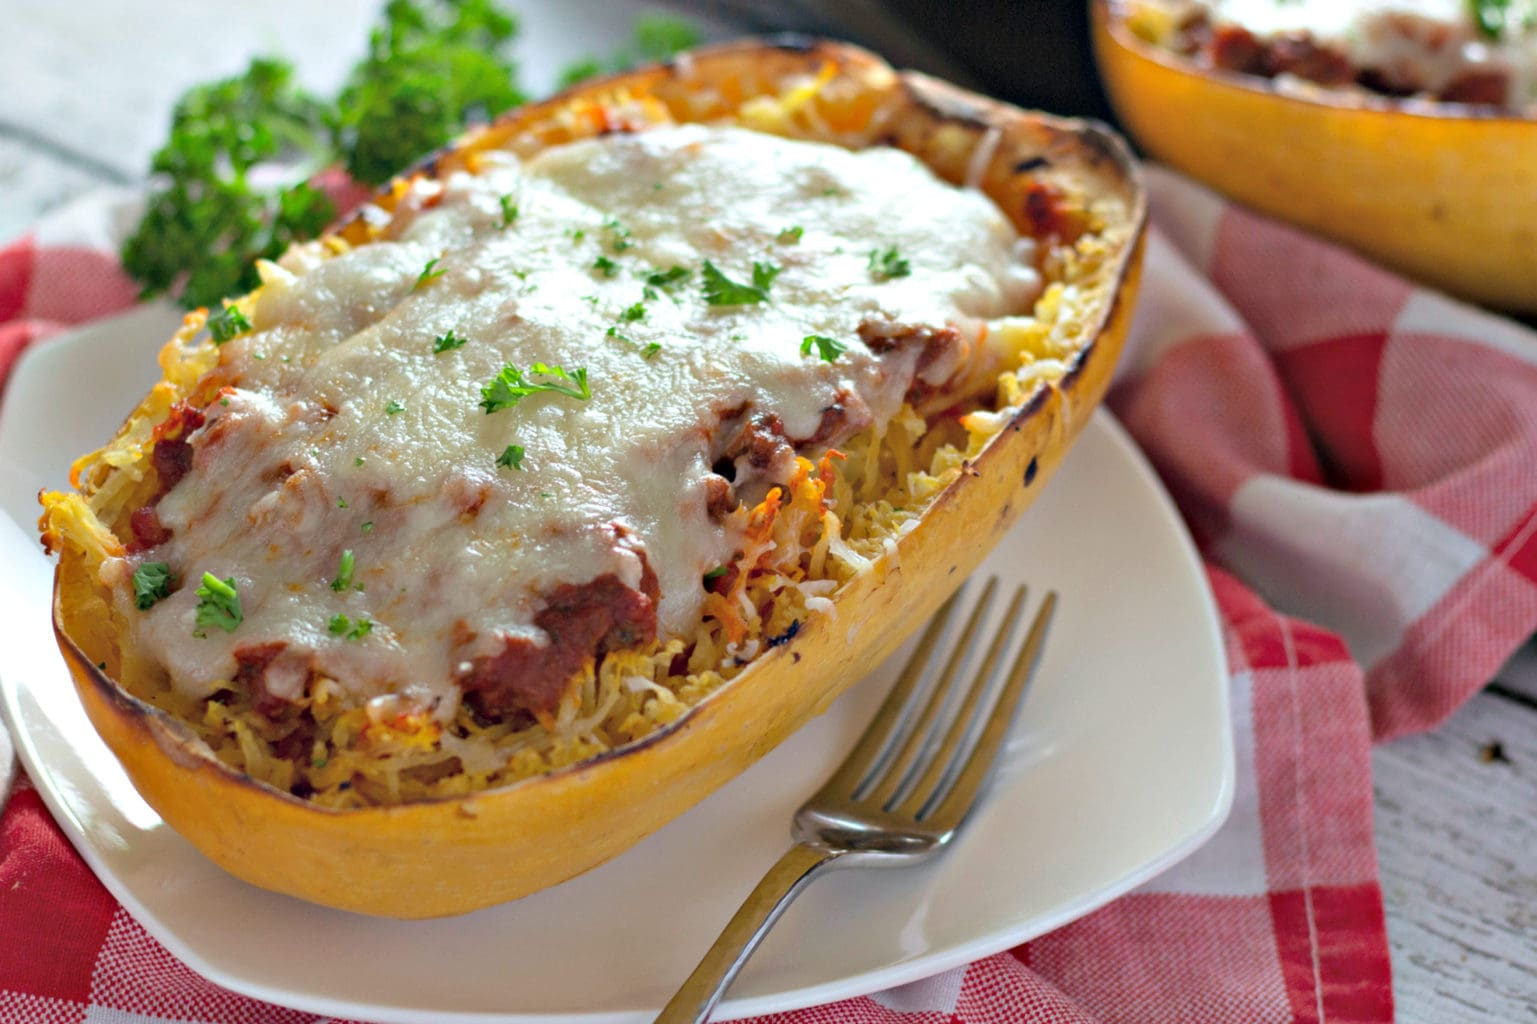 baked spaghetti squash recipe stuffed with meat sauce